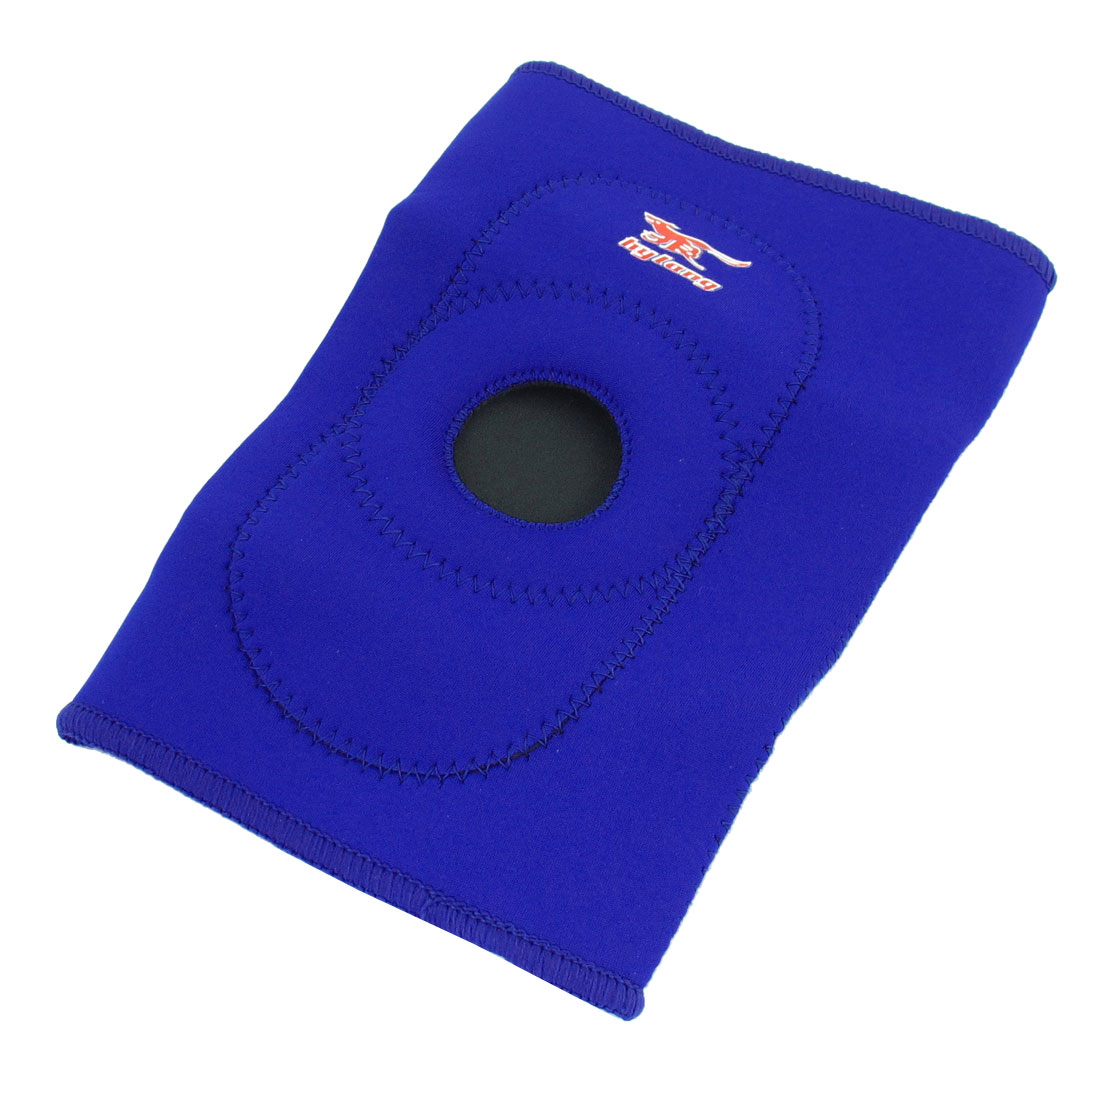 Blue Neoprene Hole Design Pullover Sport Basketball Knee Support Brace